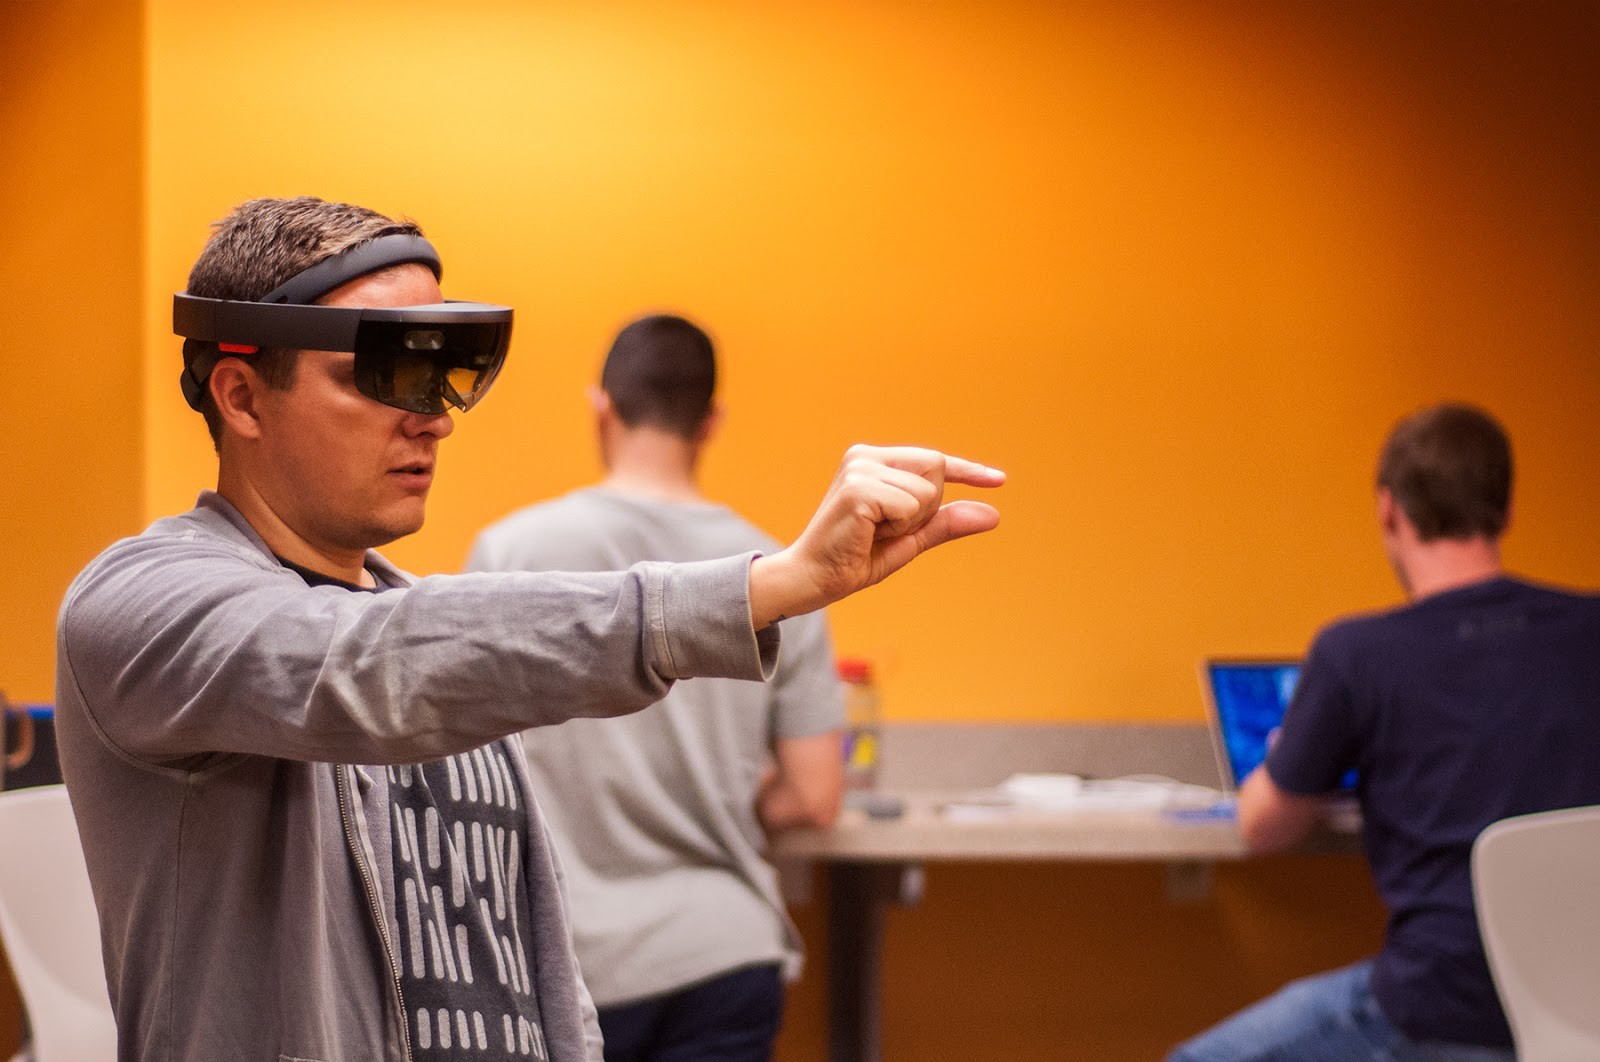 HoloLens Review Part I: Physical Aspects - Mission Data Journal